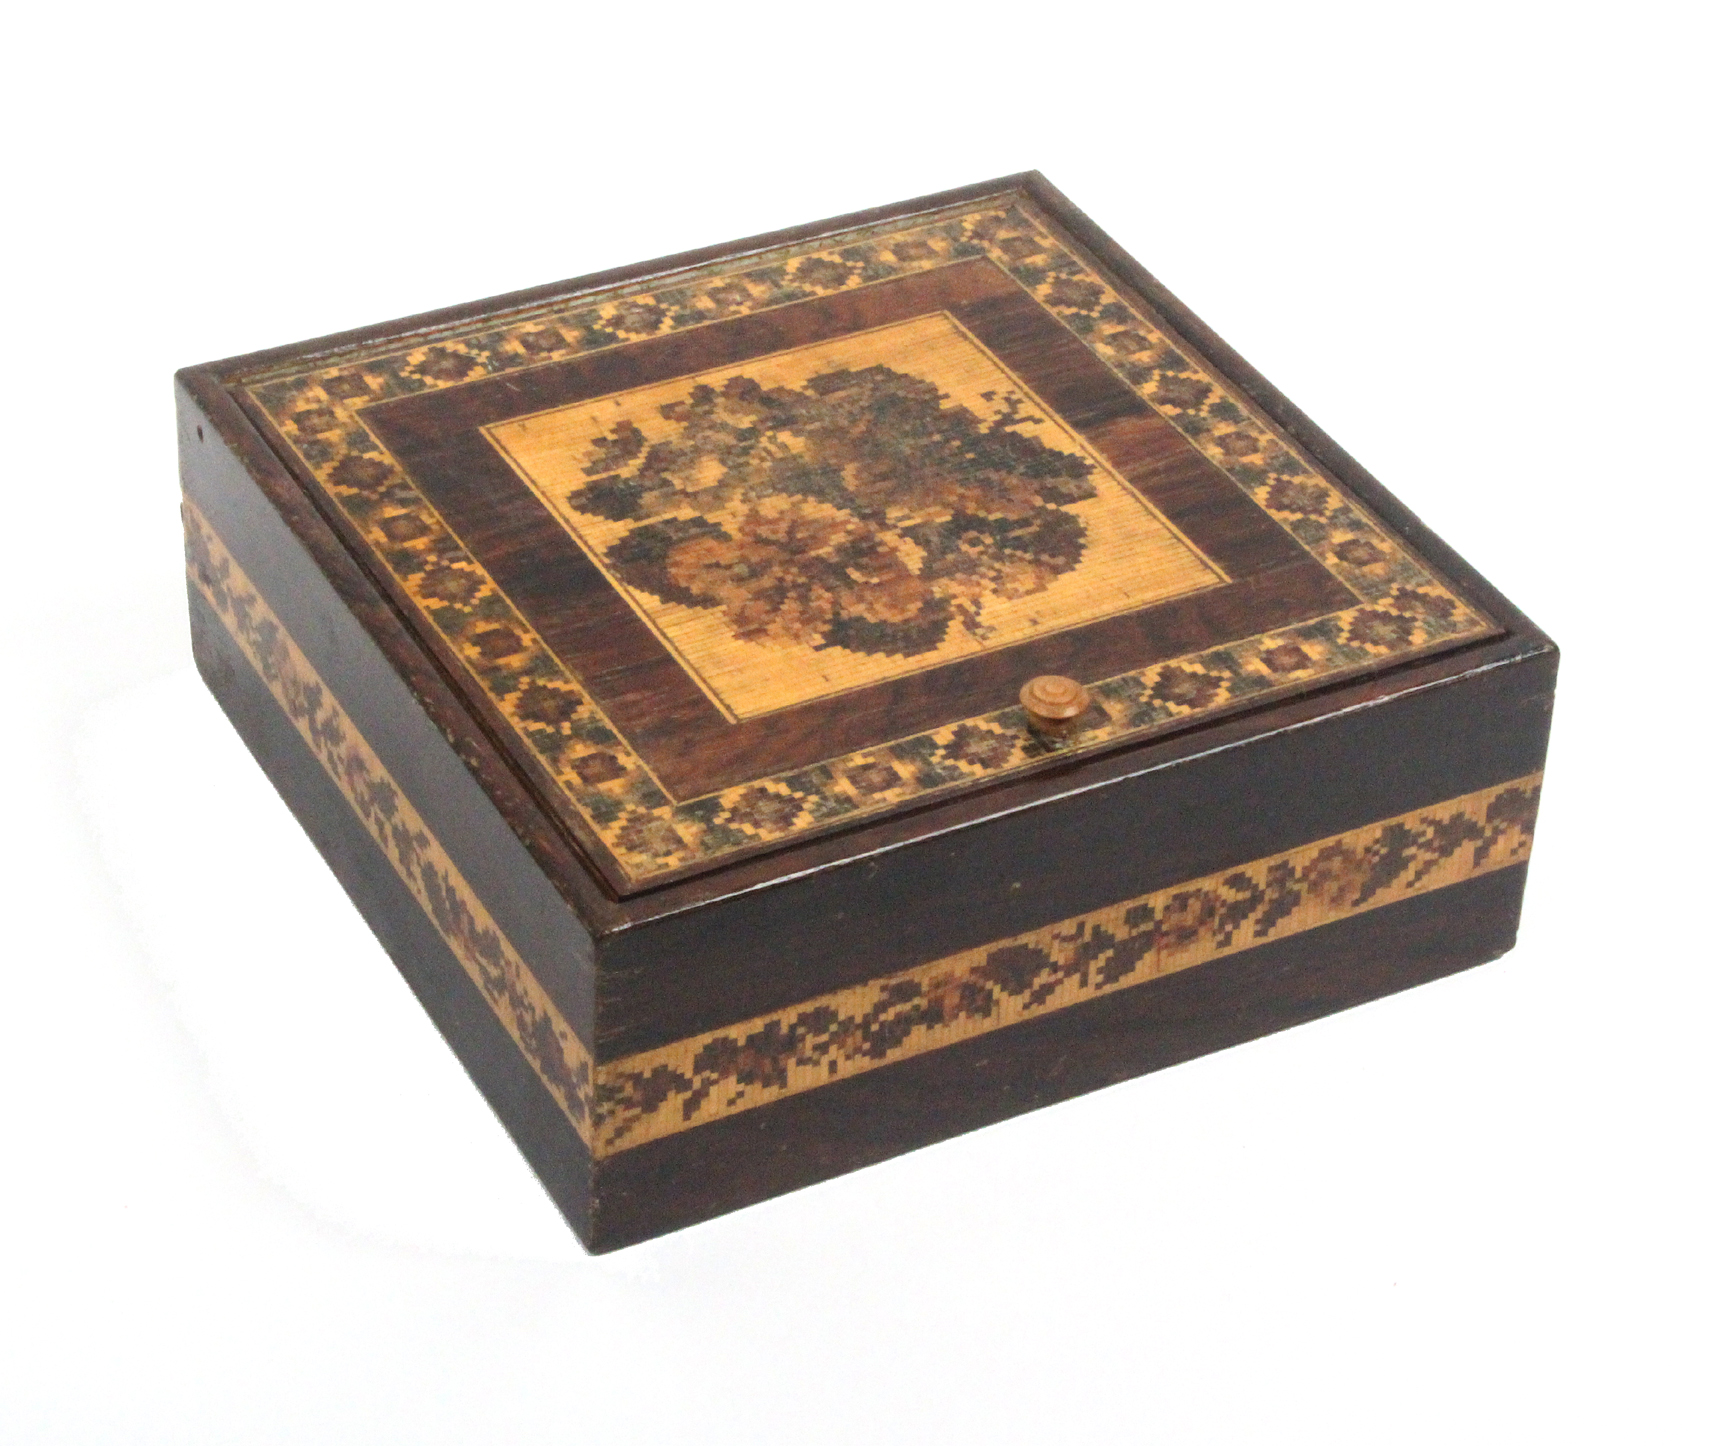 Lot 5 - A rosewood Turnbridge ware box of square form, the pin hinge lid with a panel of floral mosaic